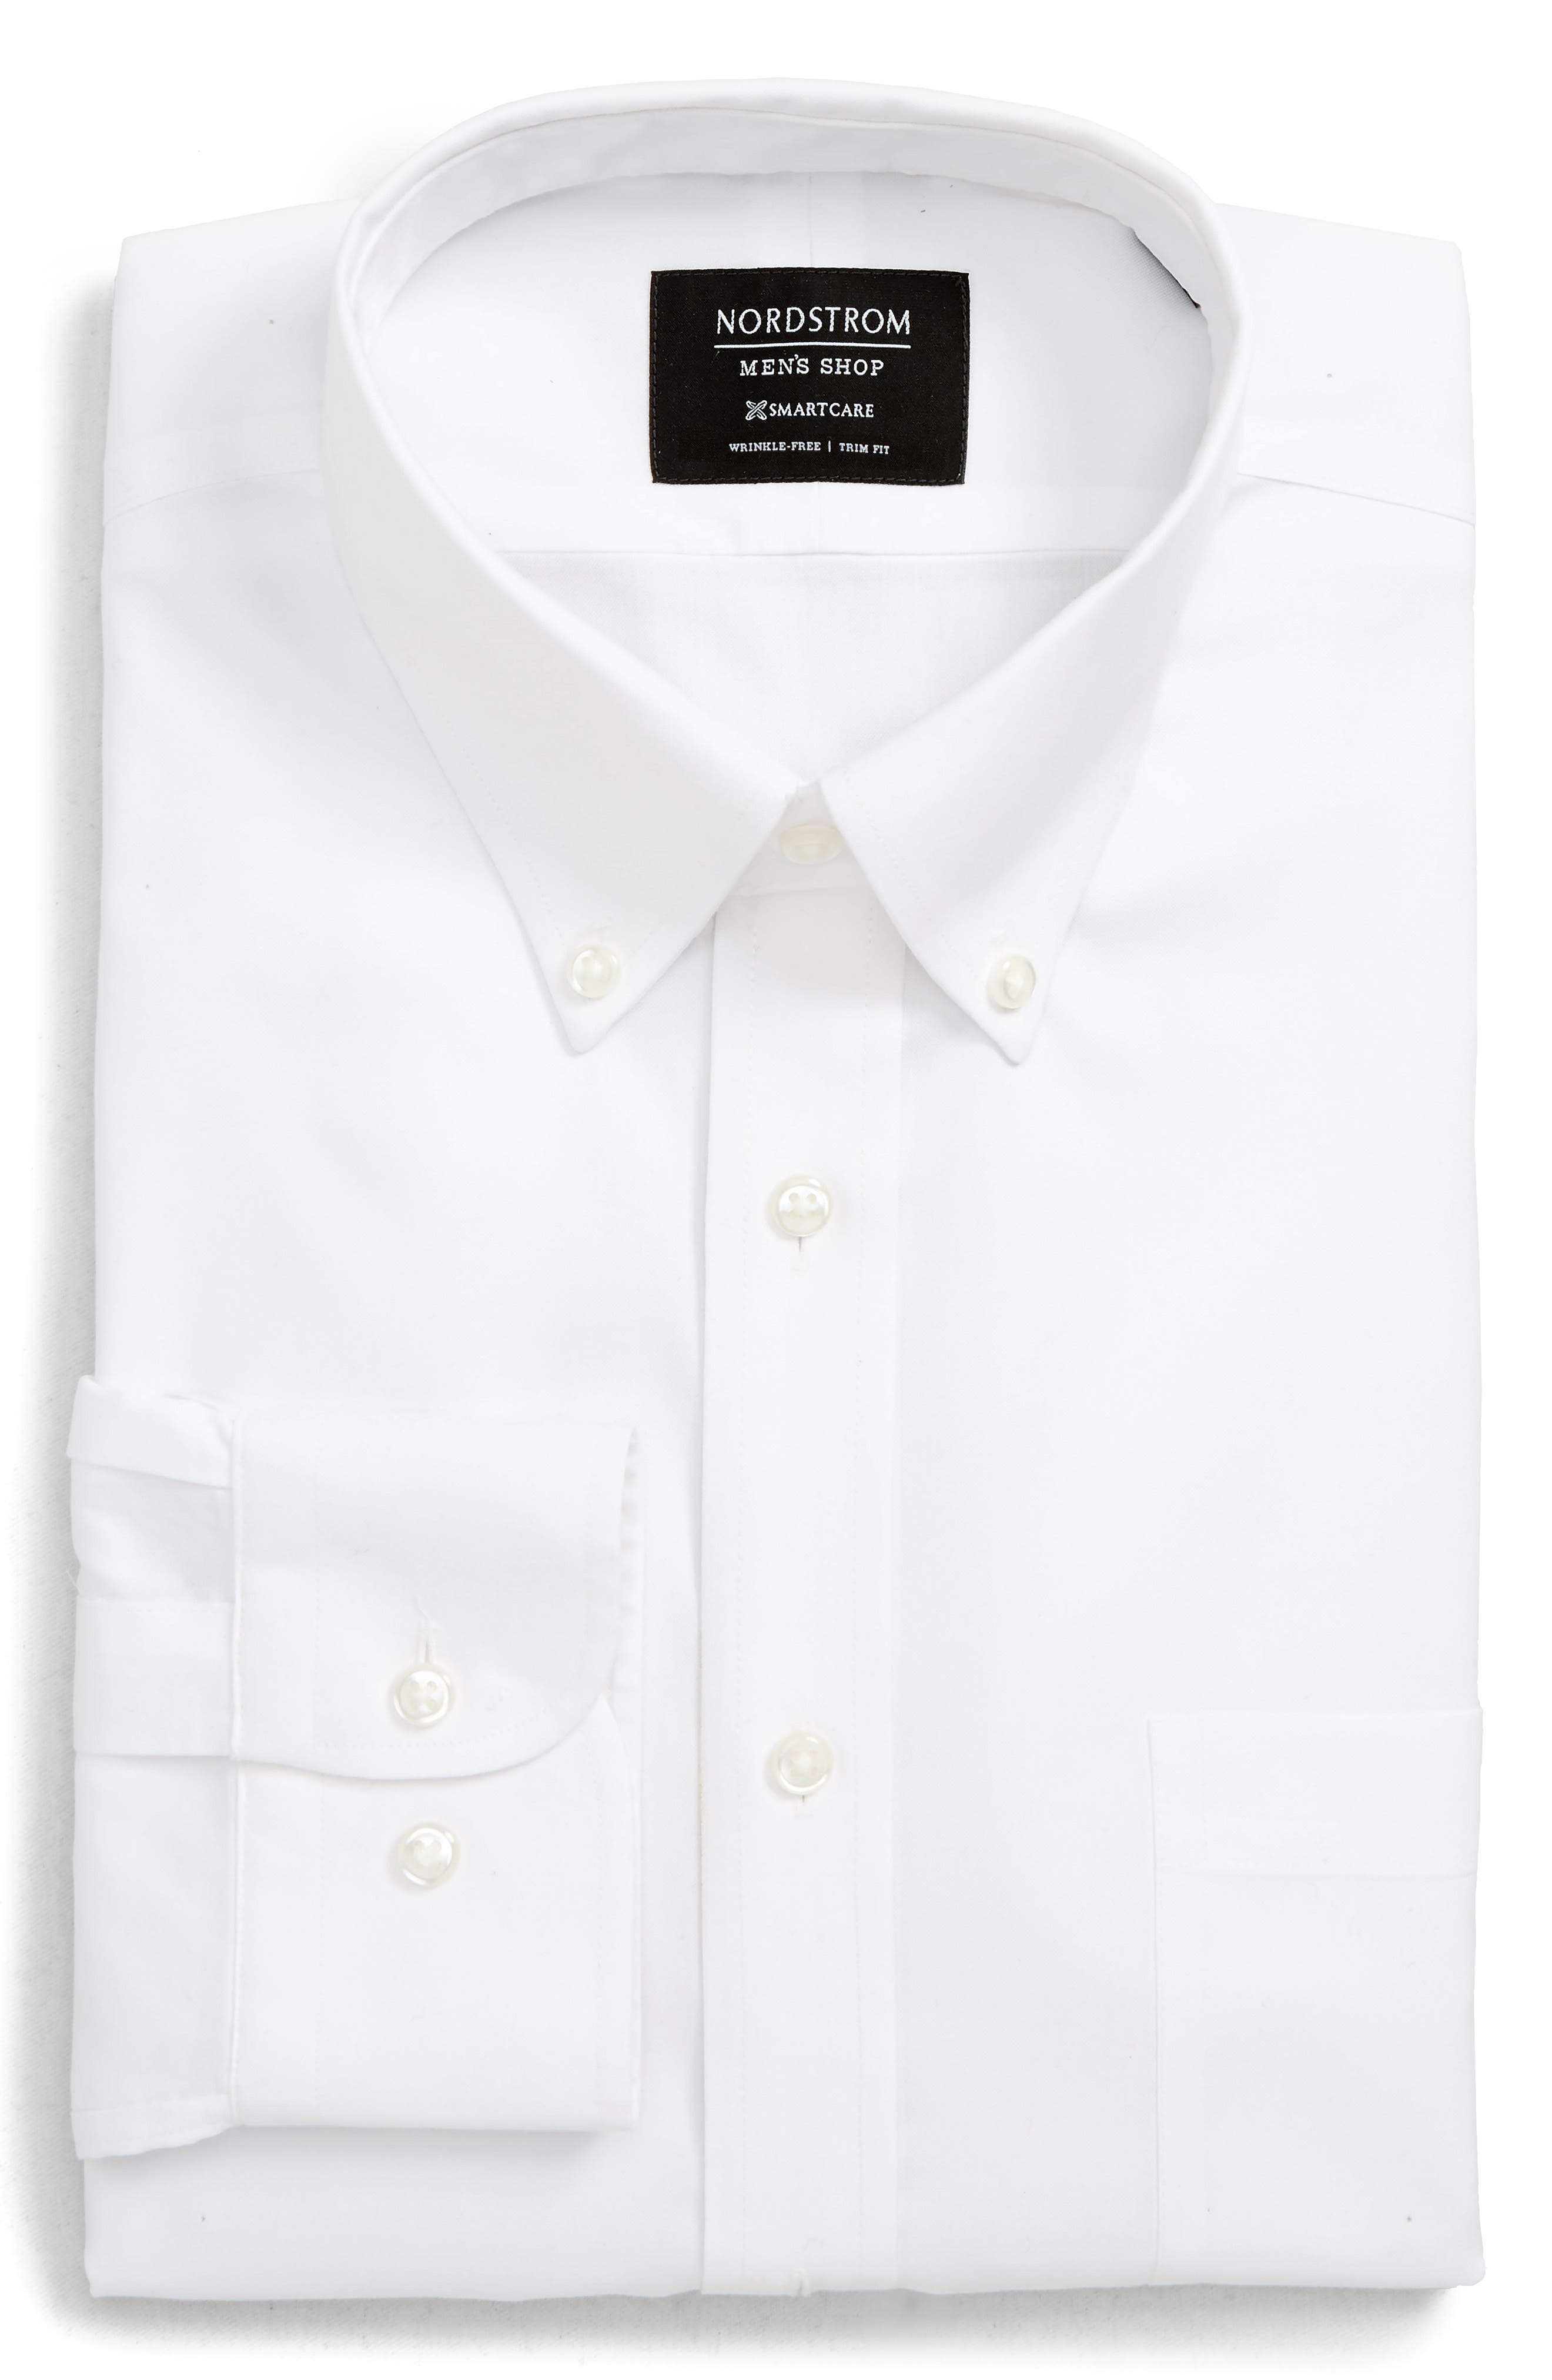 Nordstrom Shop Smartcare(TM) Trim Fit Dress Shirt - White